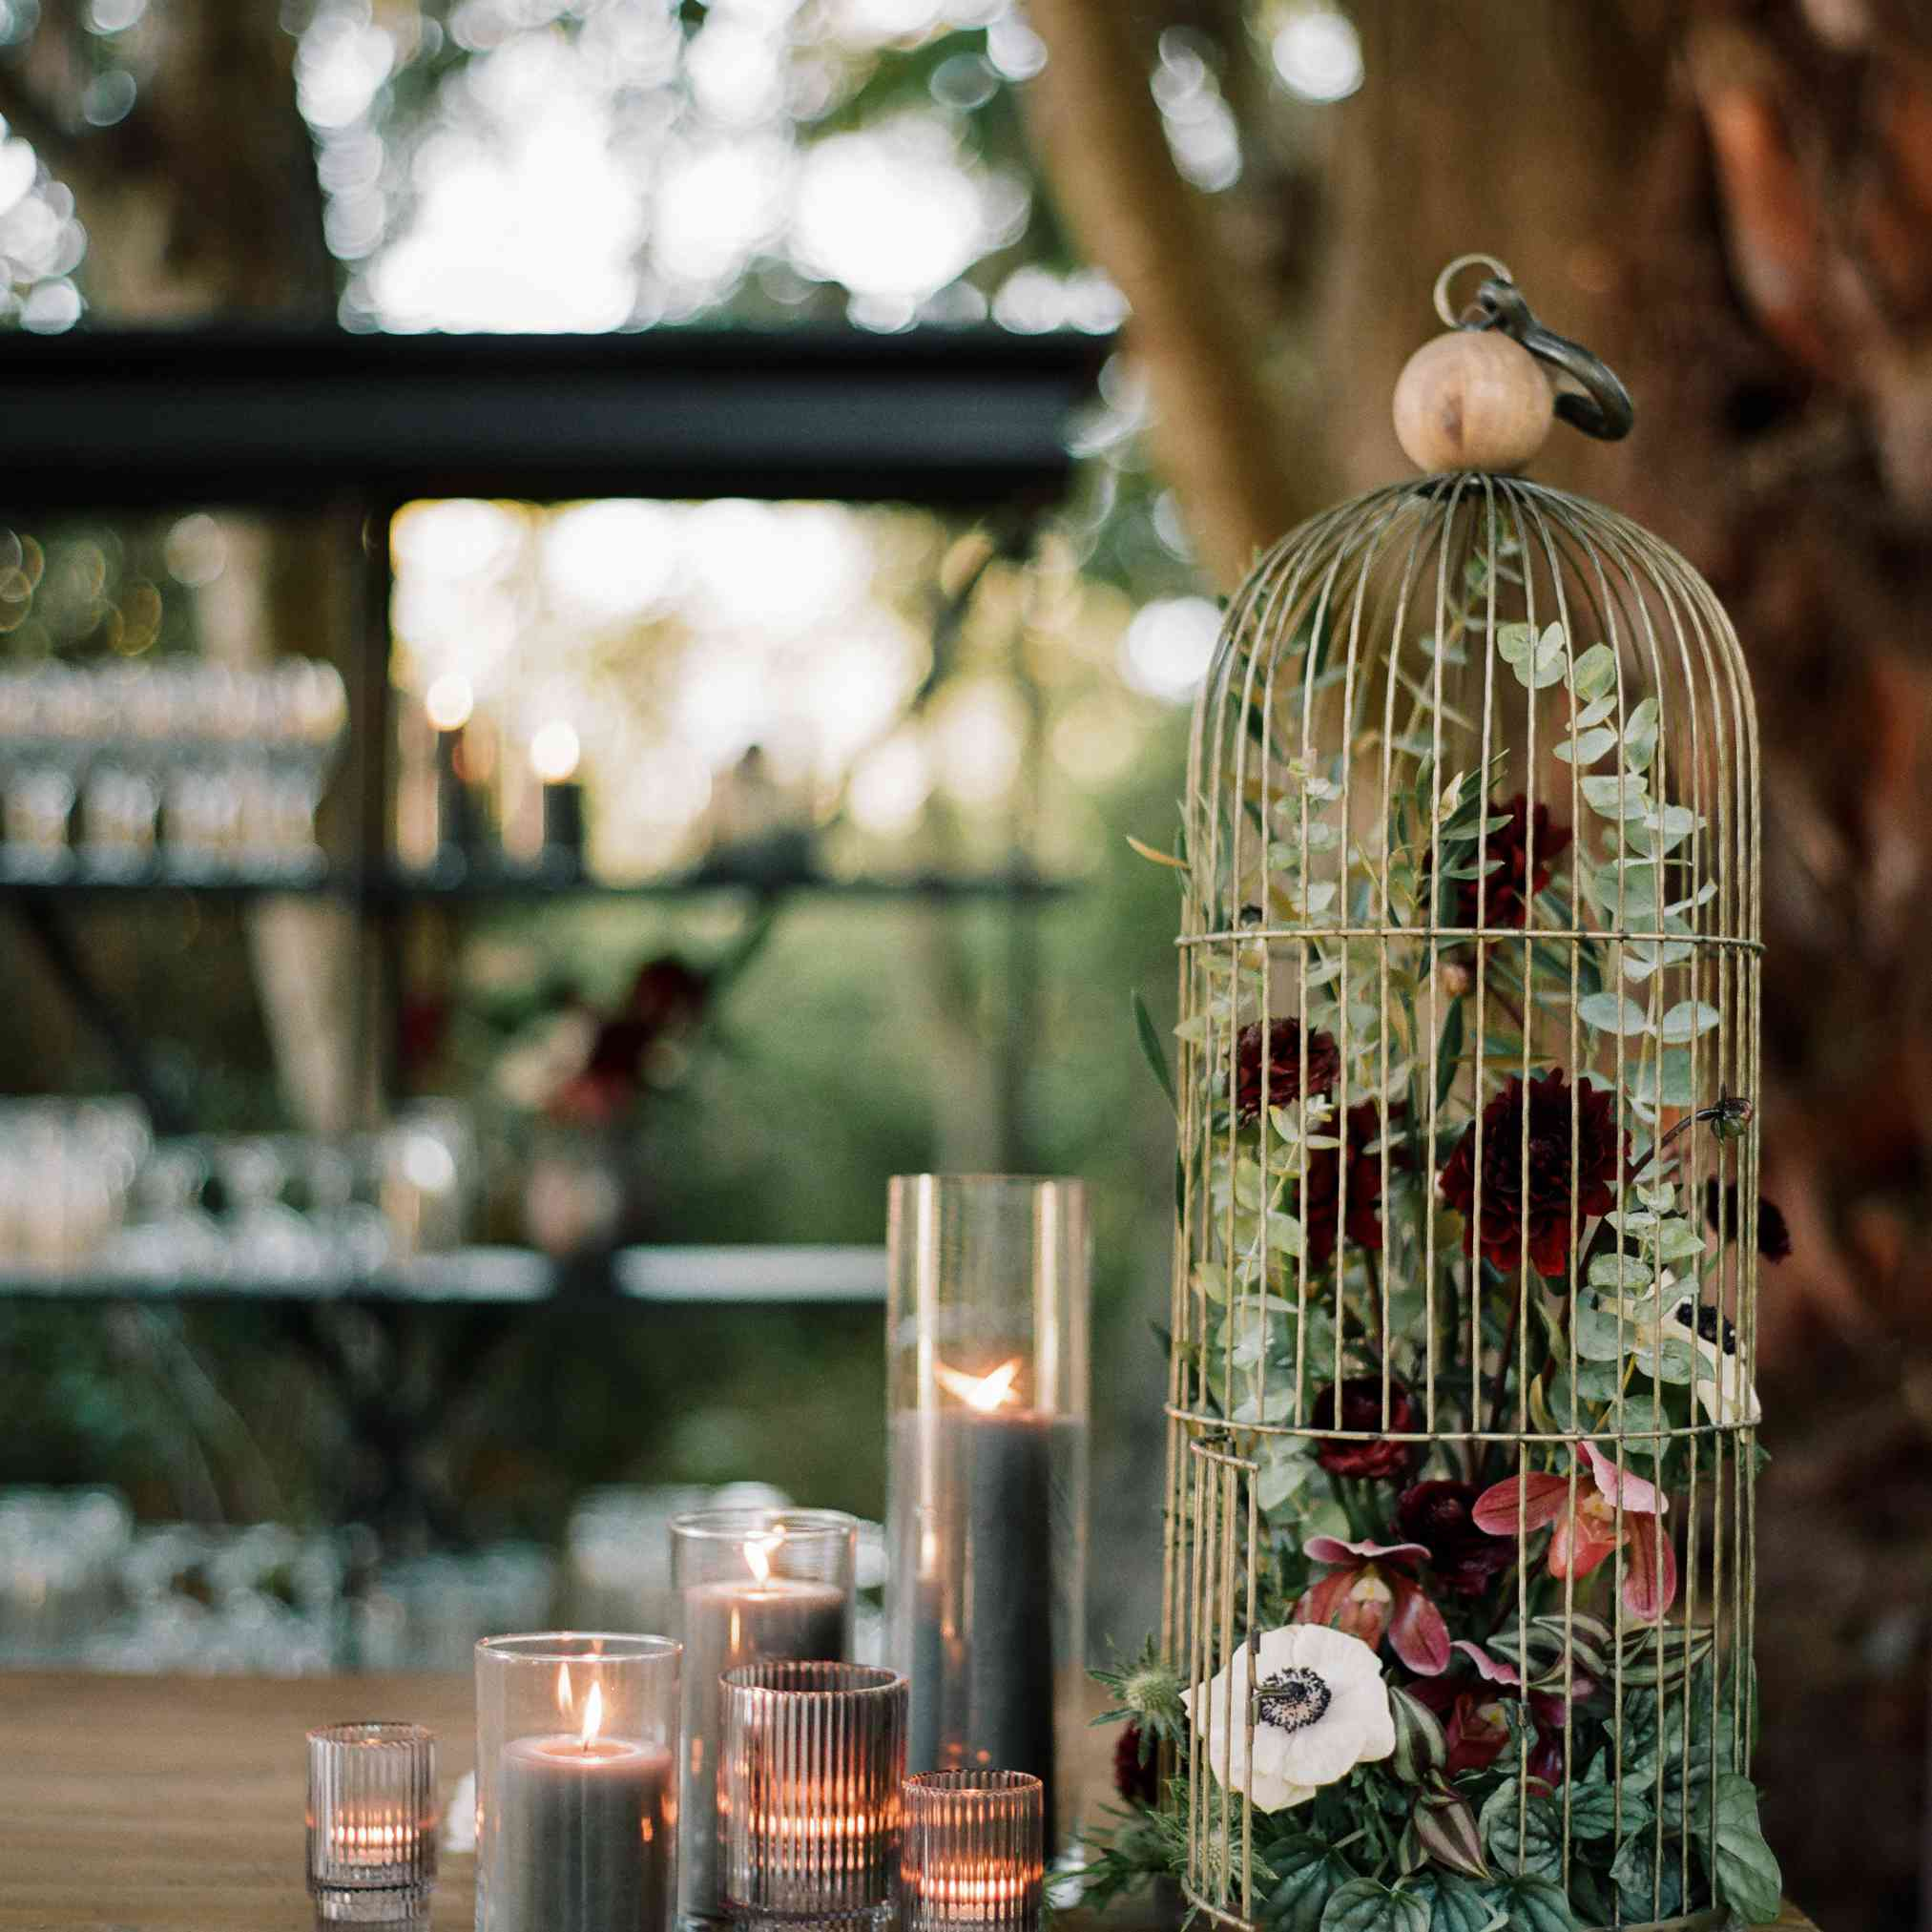 Birdcage filled with greenery and blooms